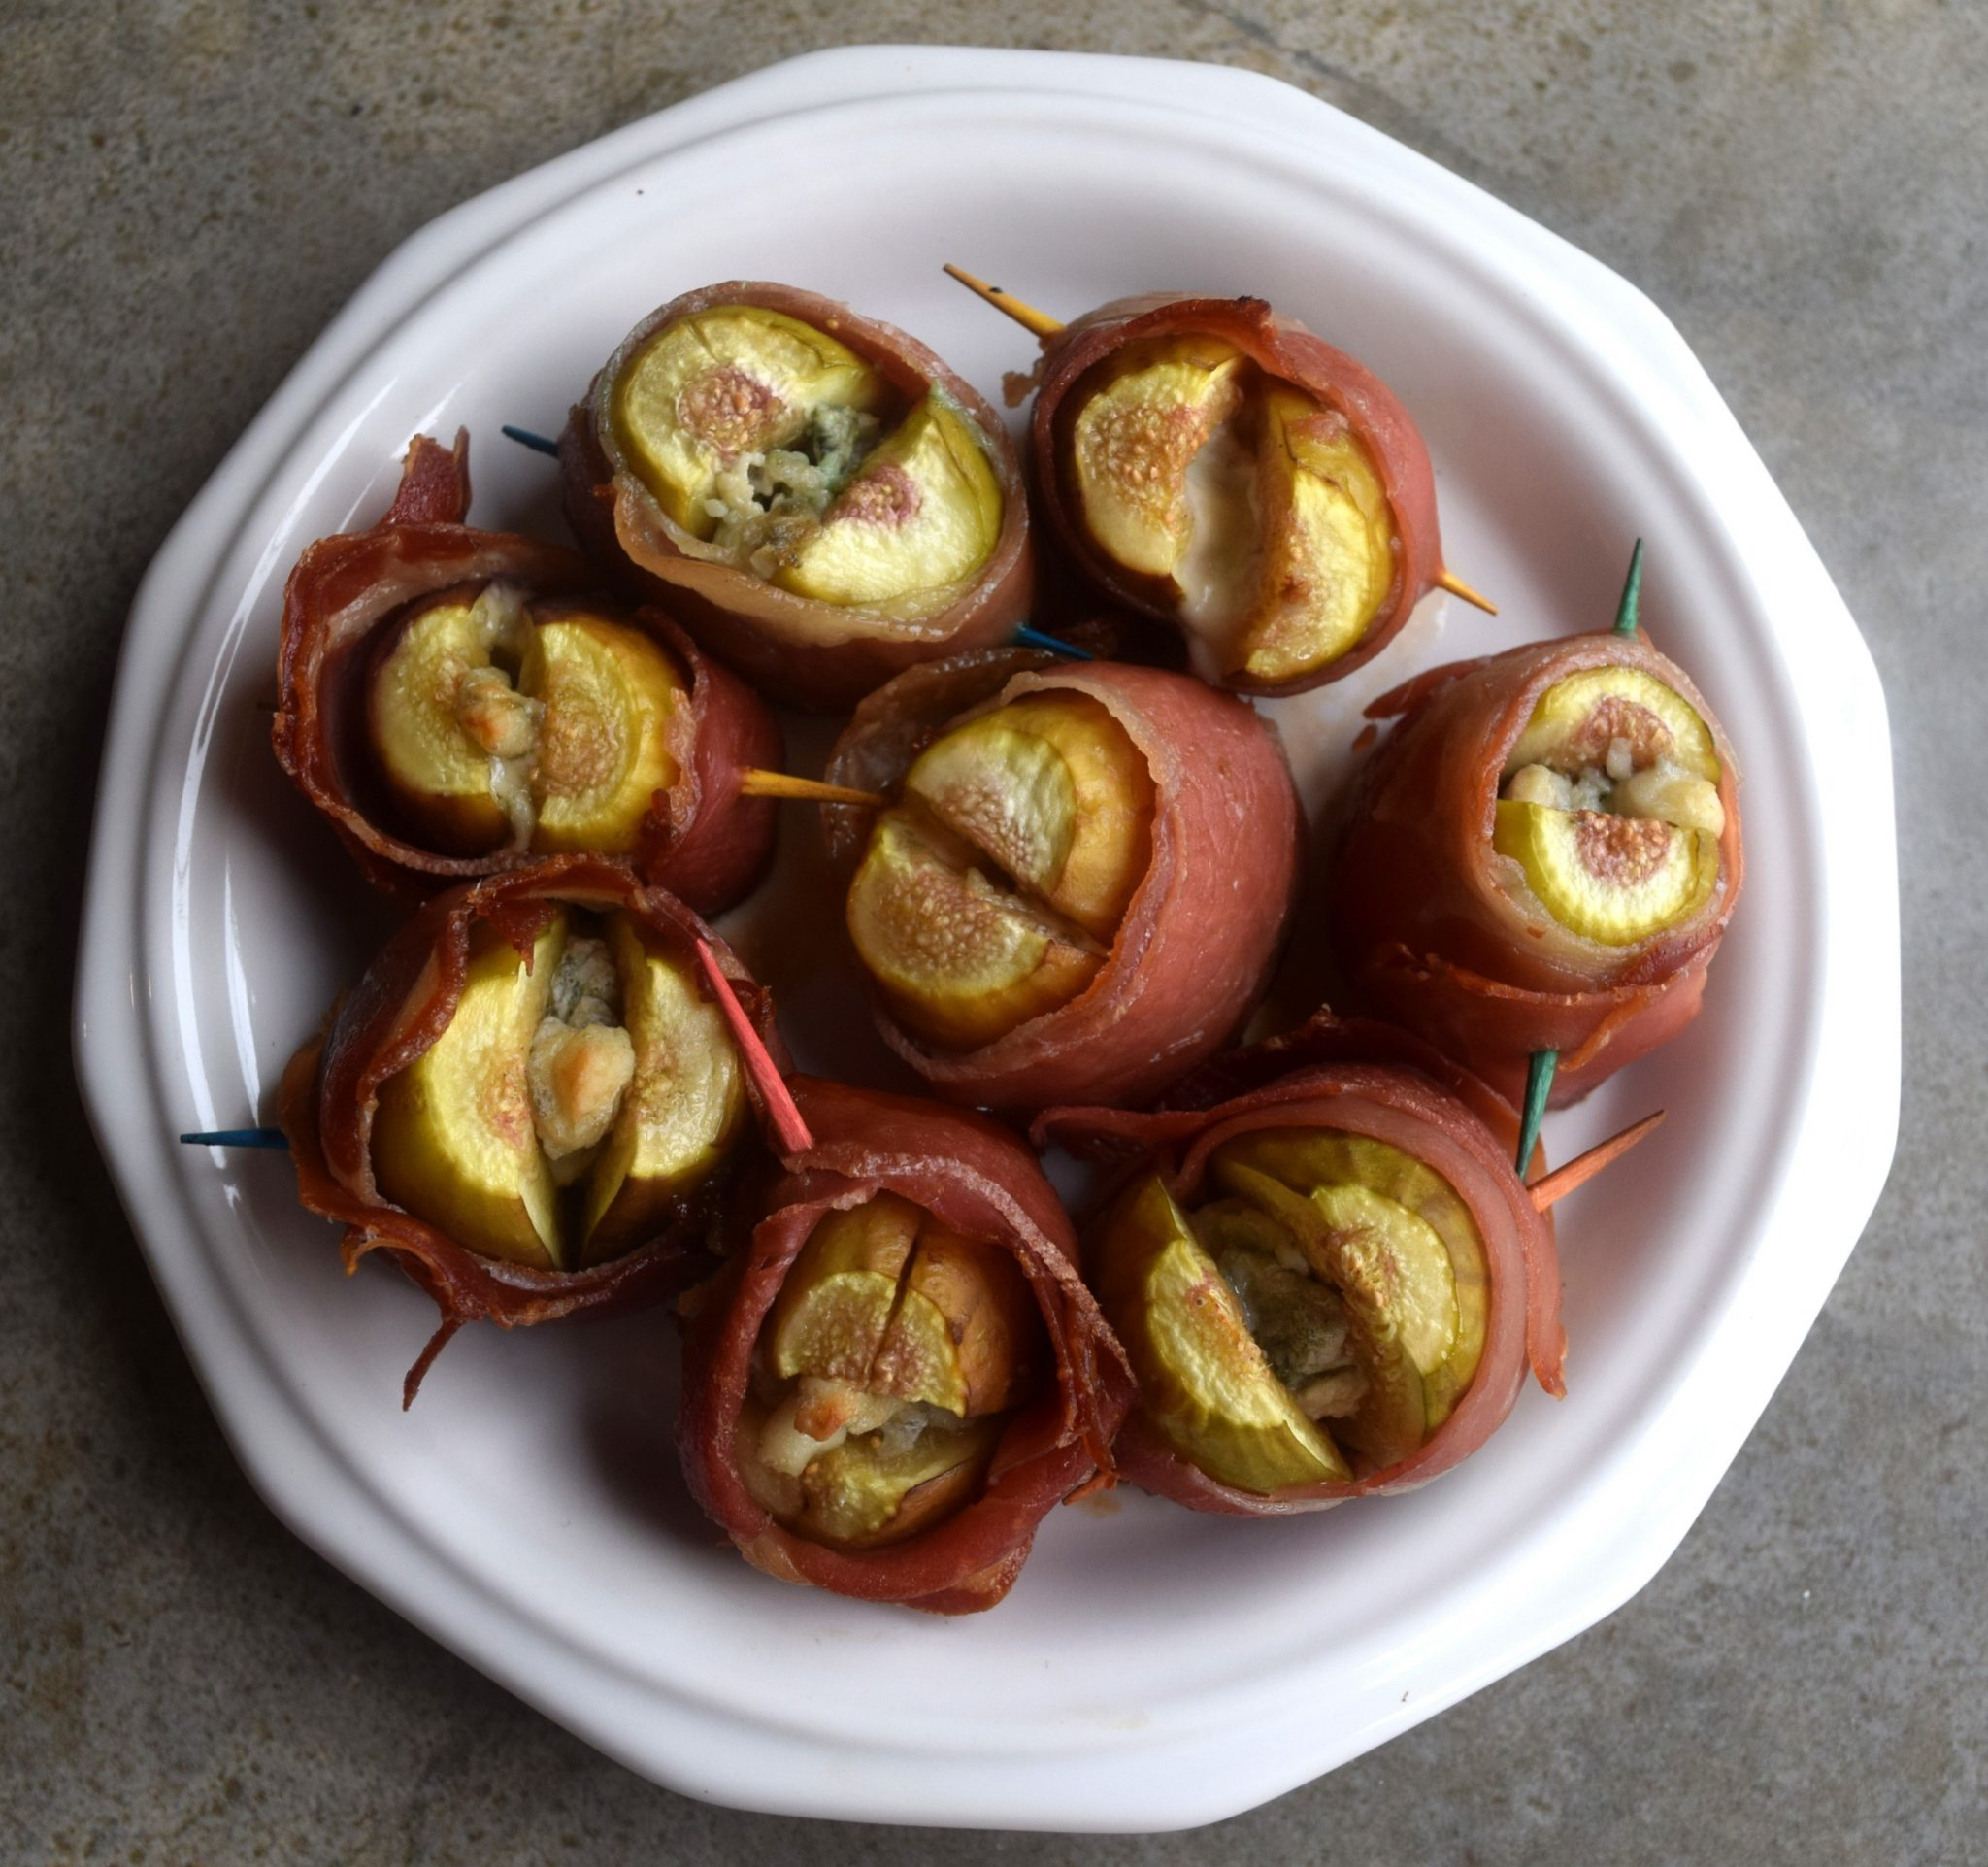 Stuffed and Bacon Wrapped Figs